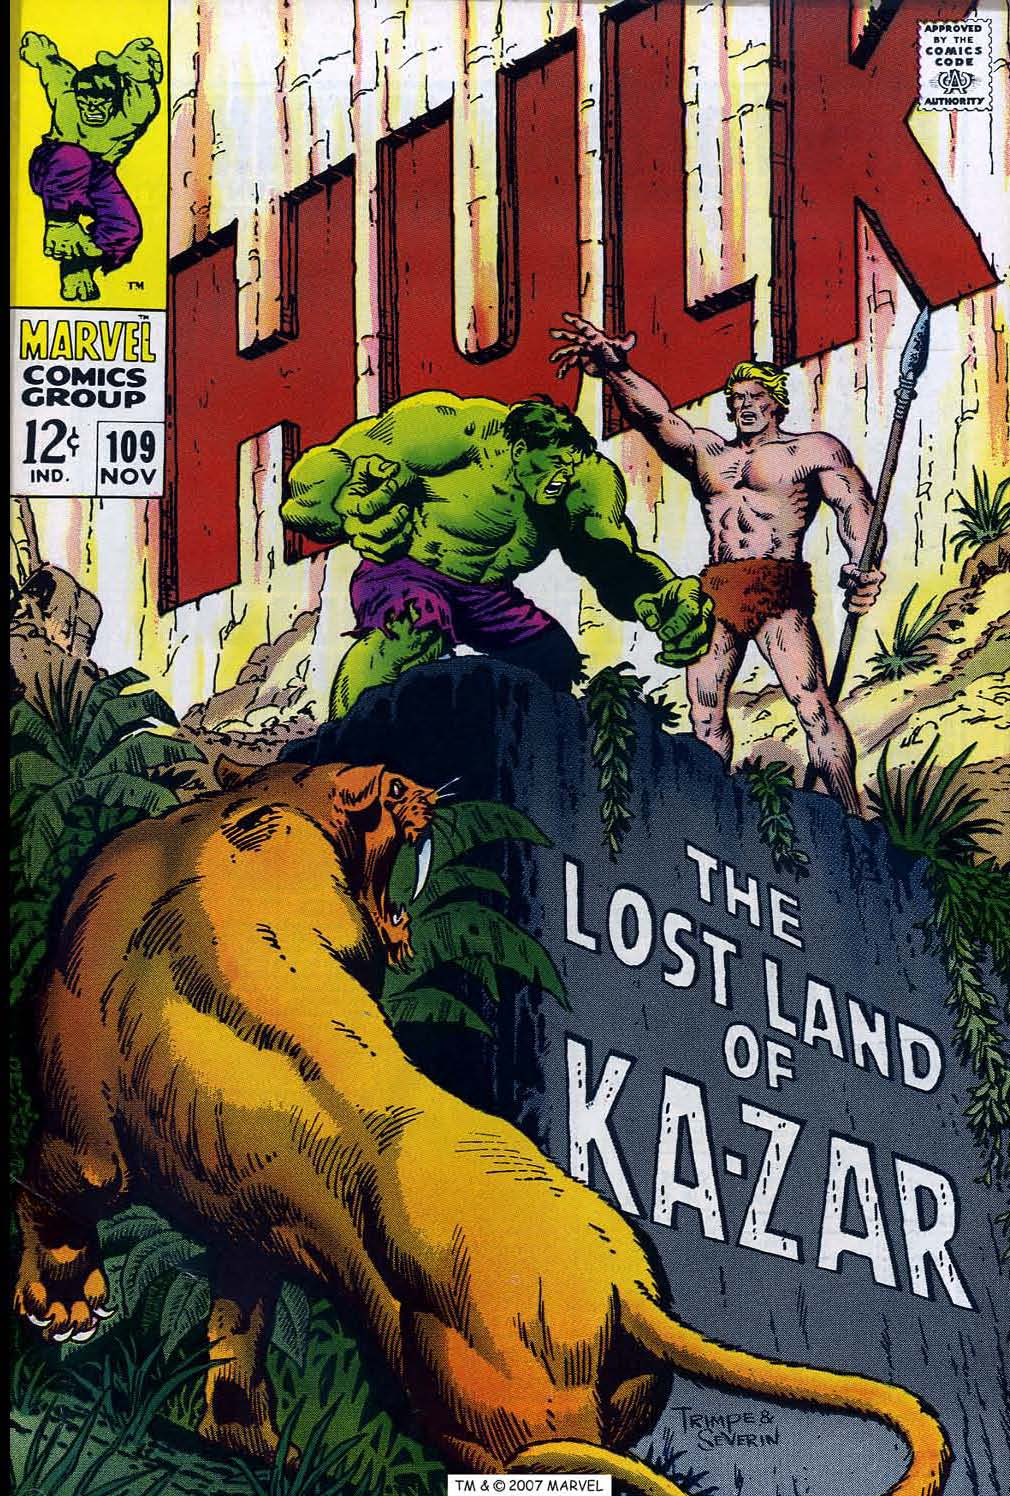 The Incredible Hulk (1968) #109, cover penciled by Herb Trimpe & inked by John Severin.